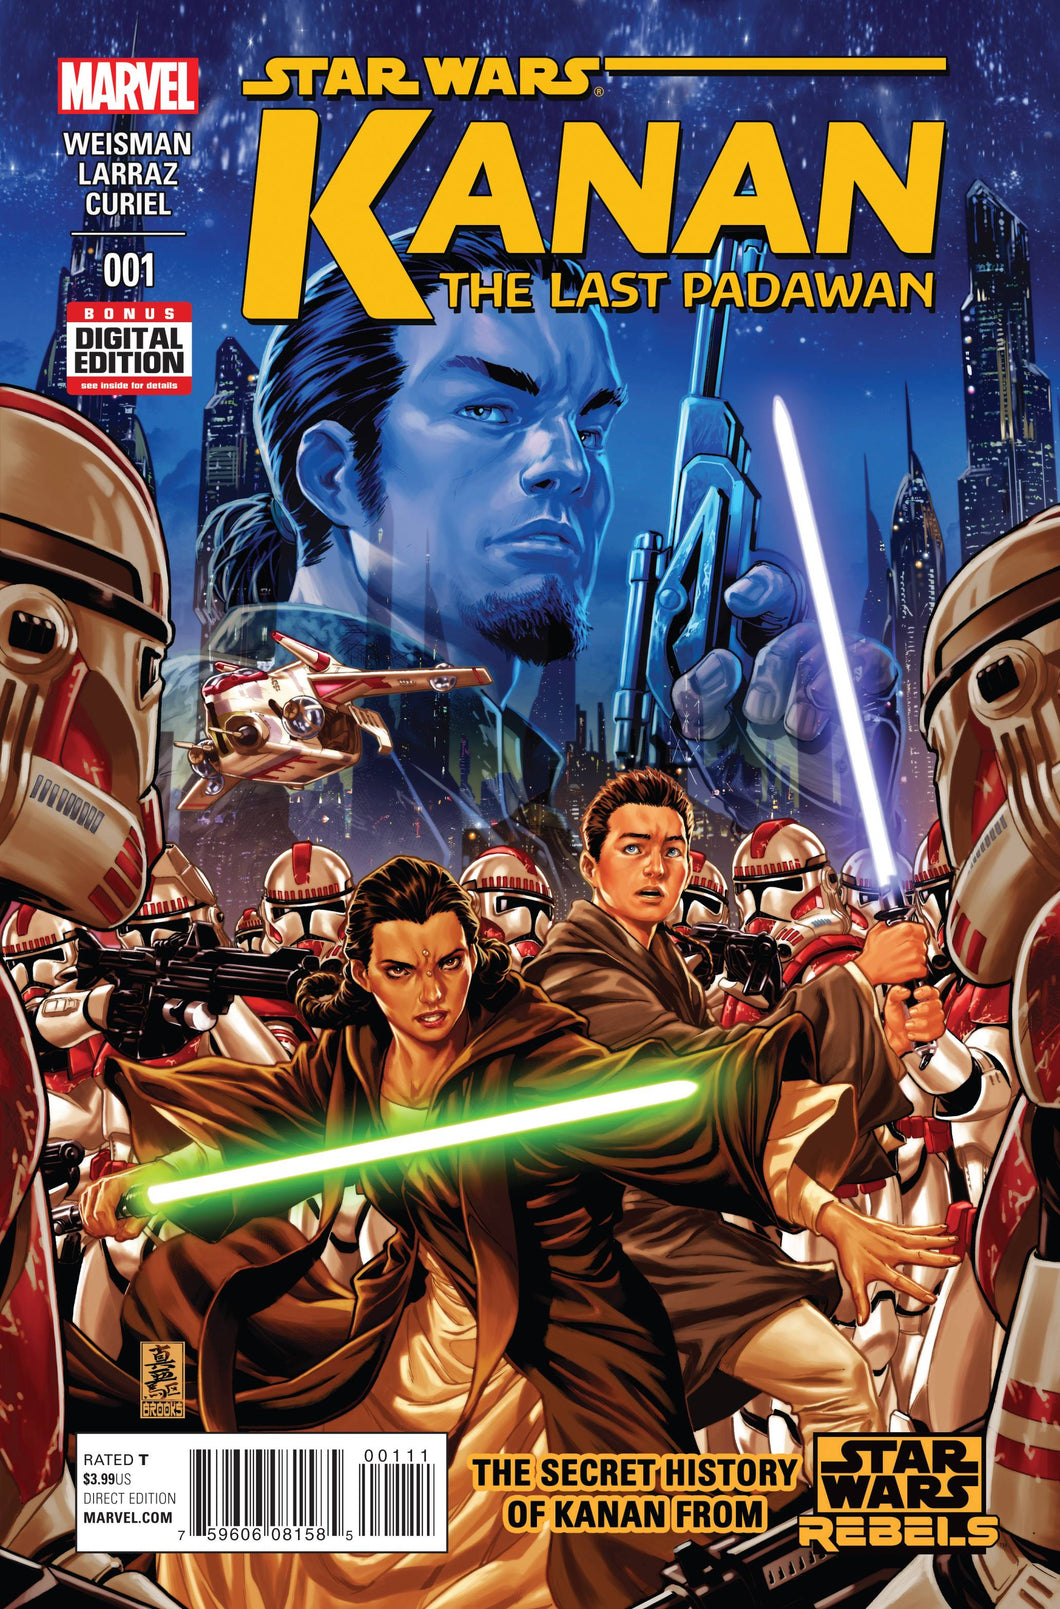 Star Wars Kanan #1